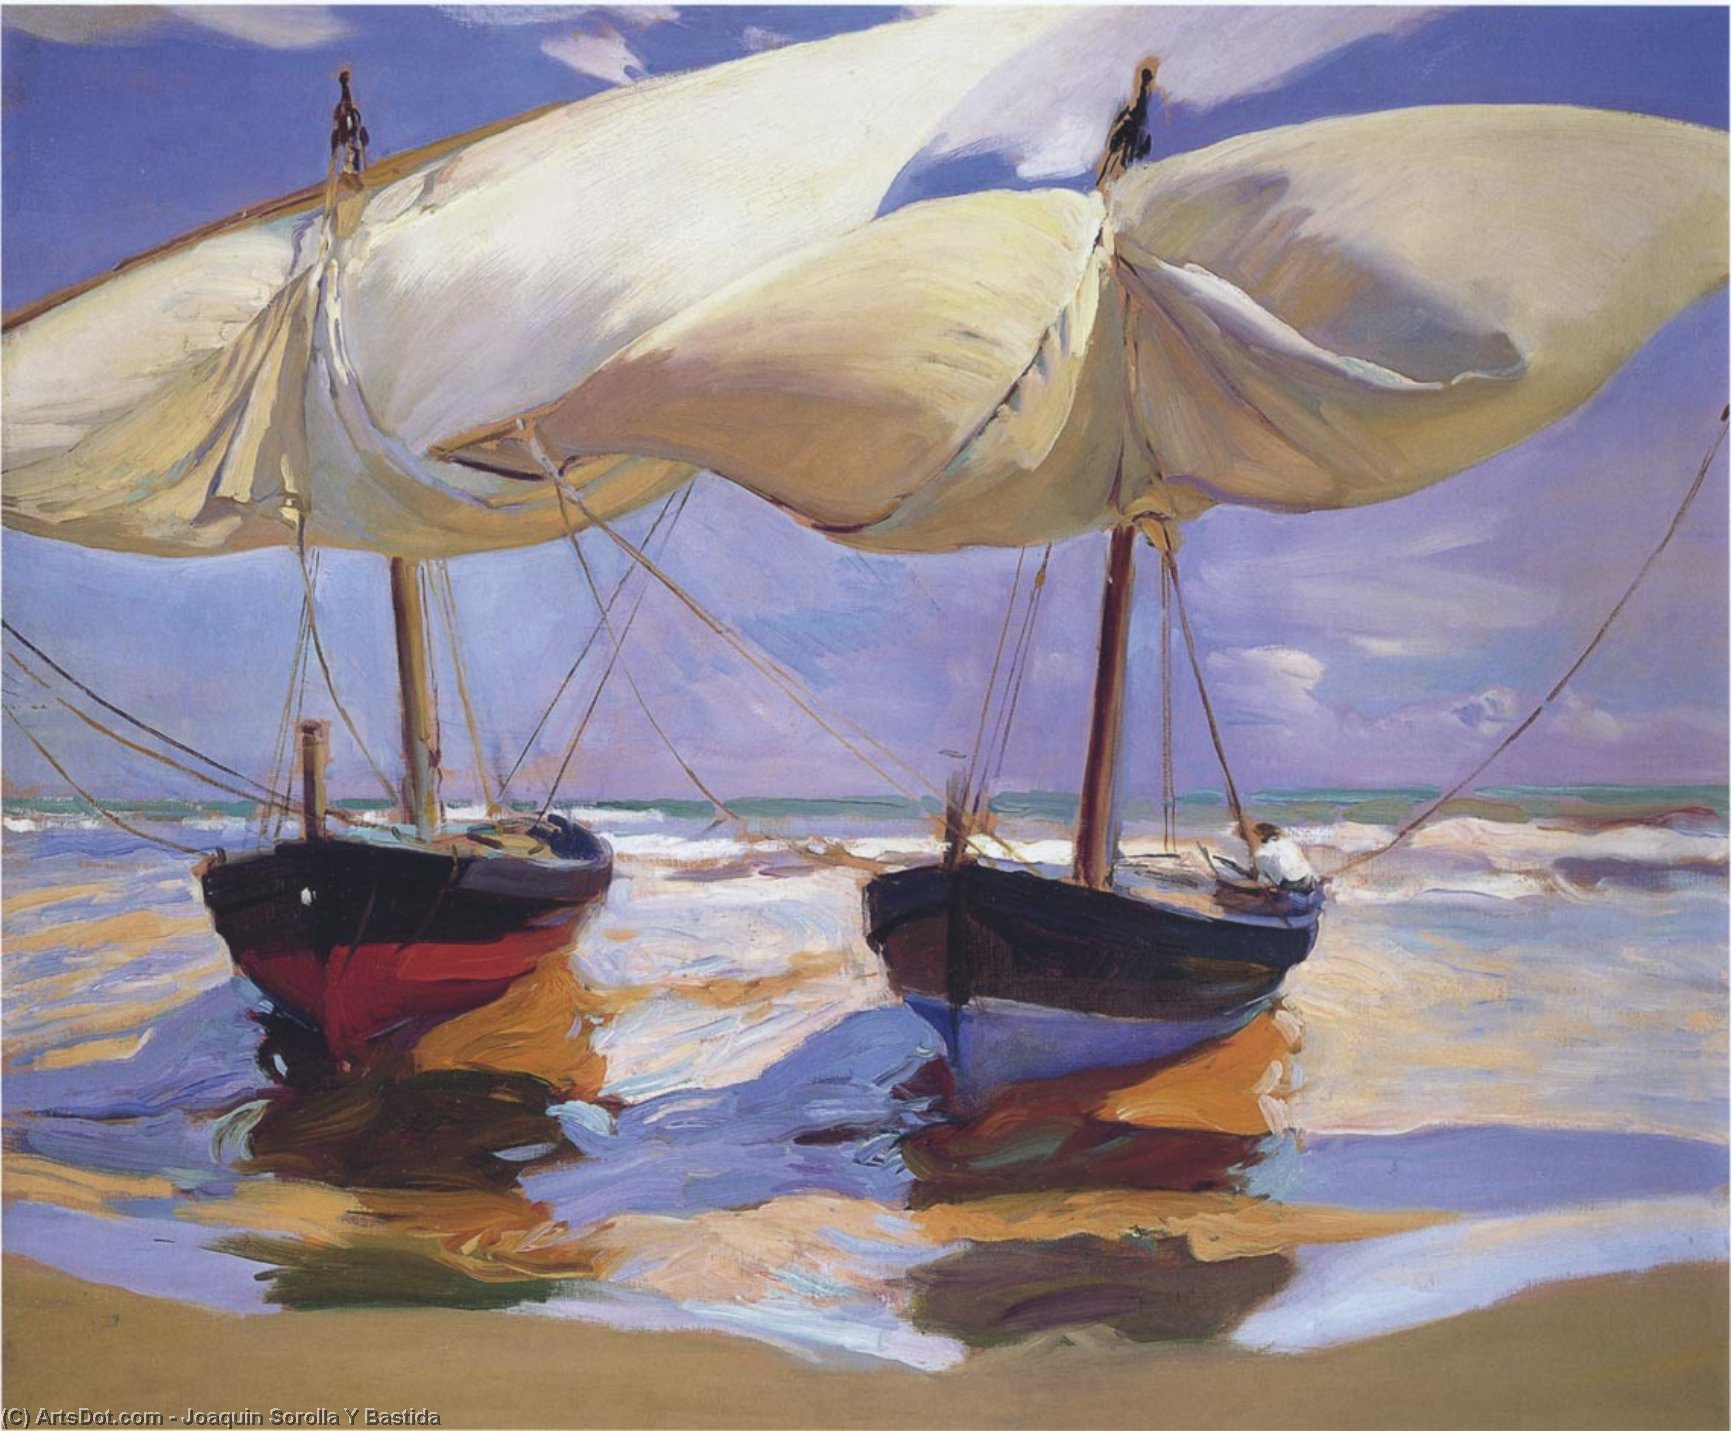 Beached Boats, Oil by Joaquin Sorolla Y Bastida (1863-1923, Spain)